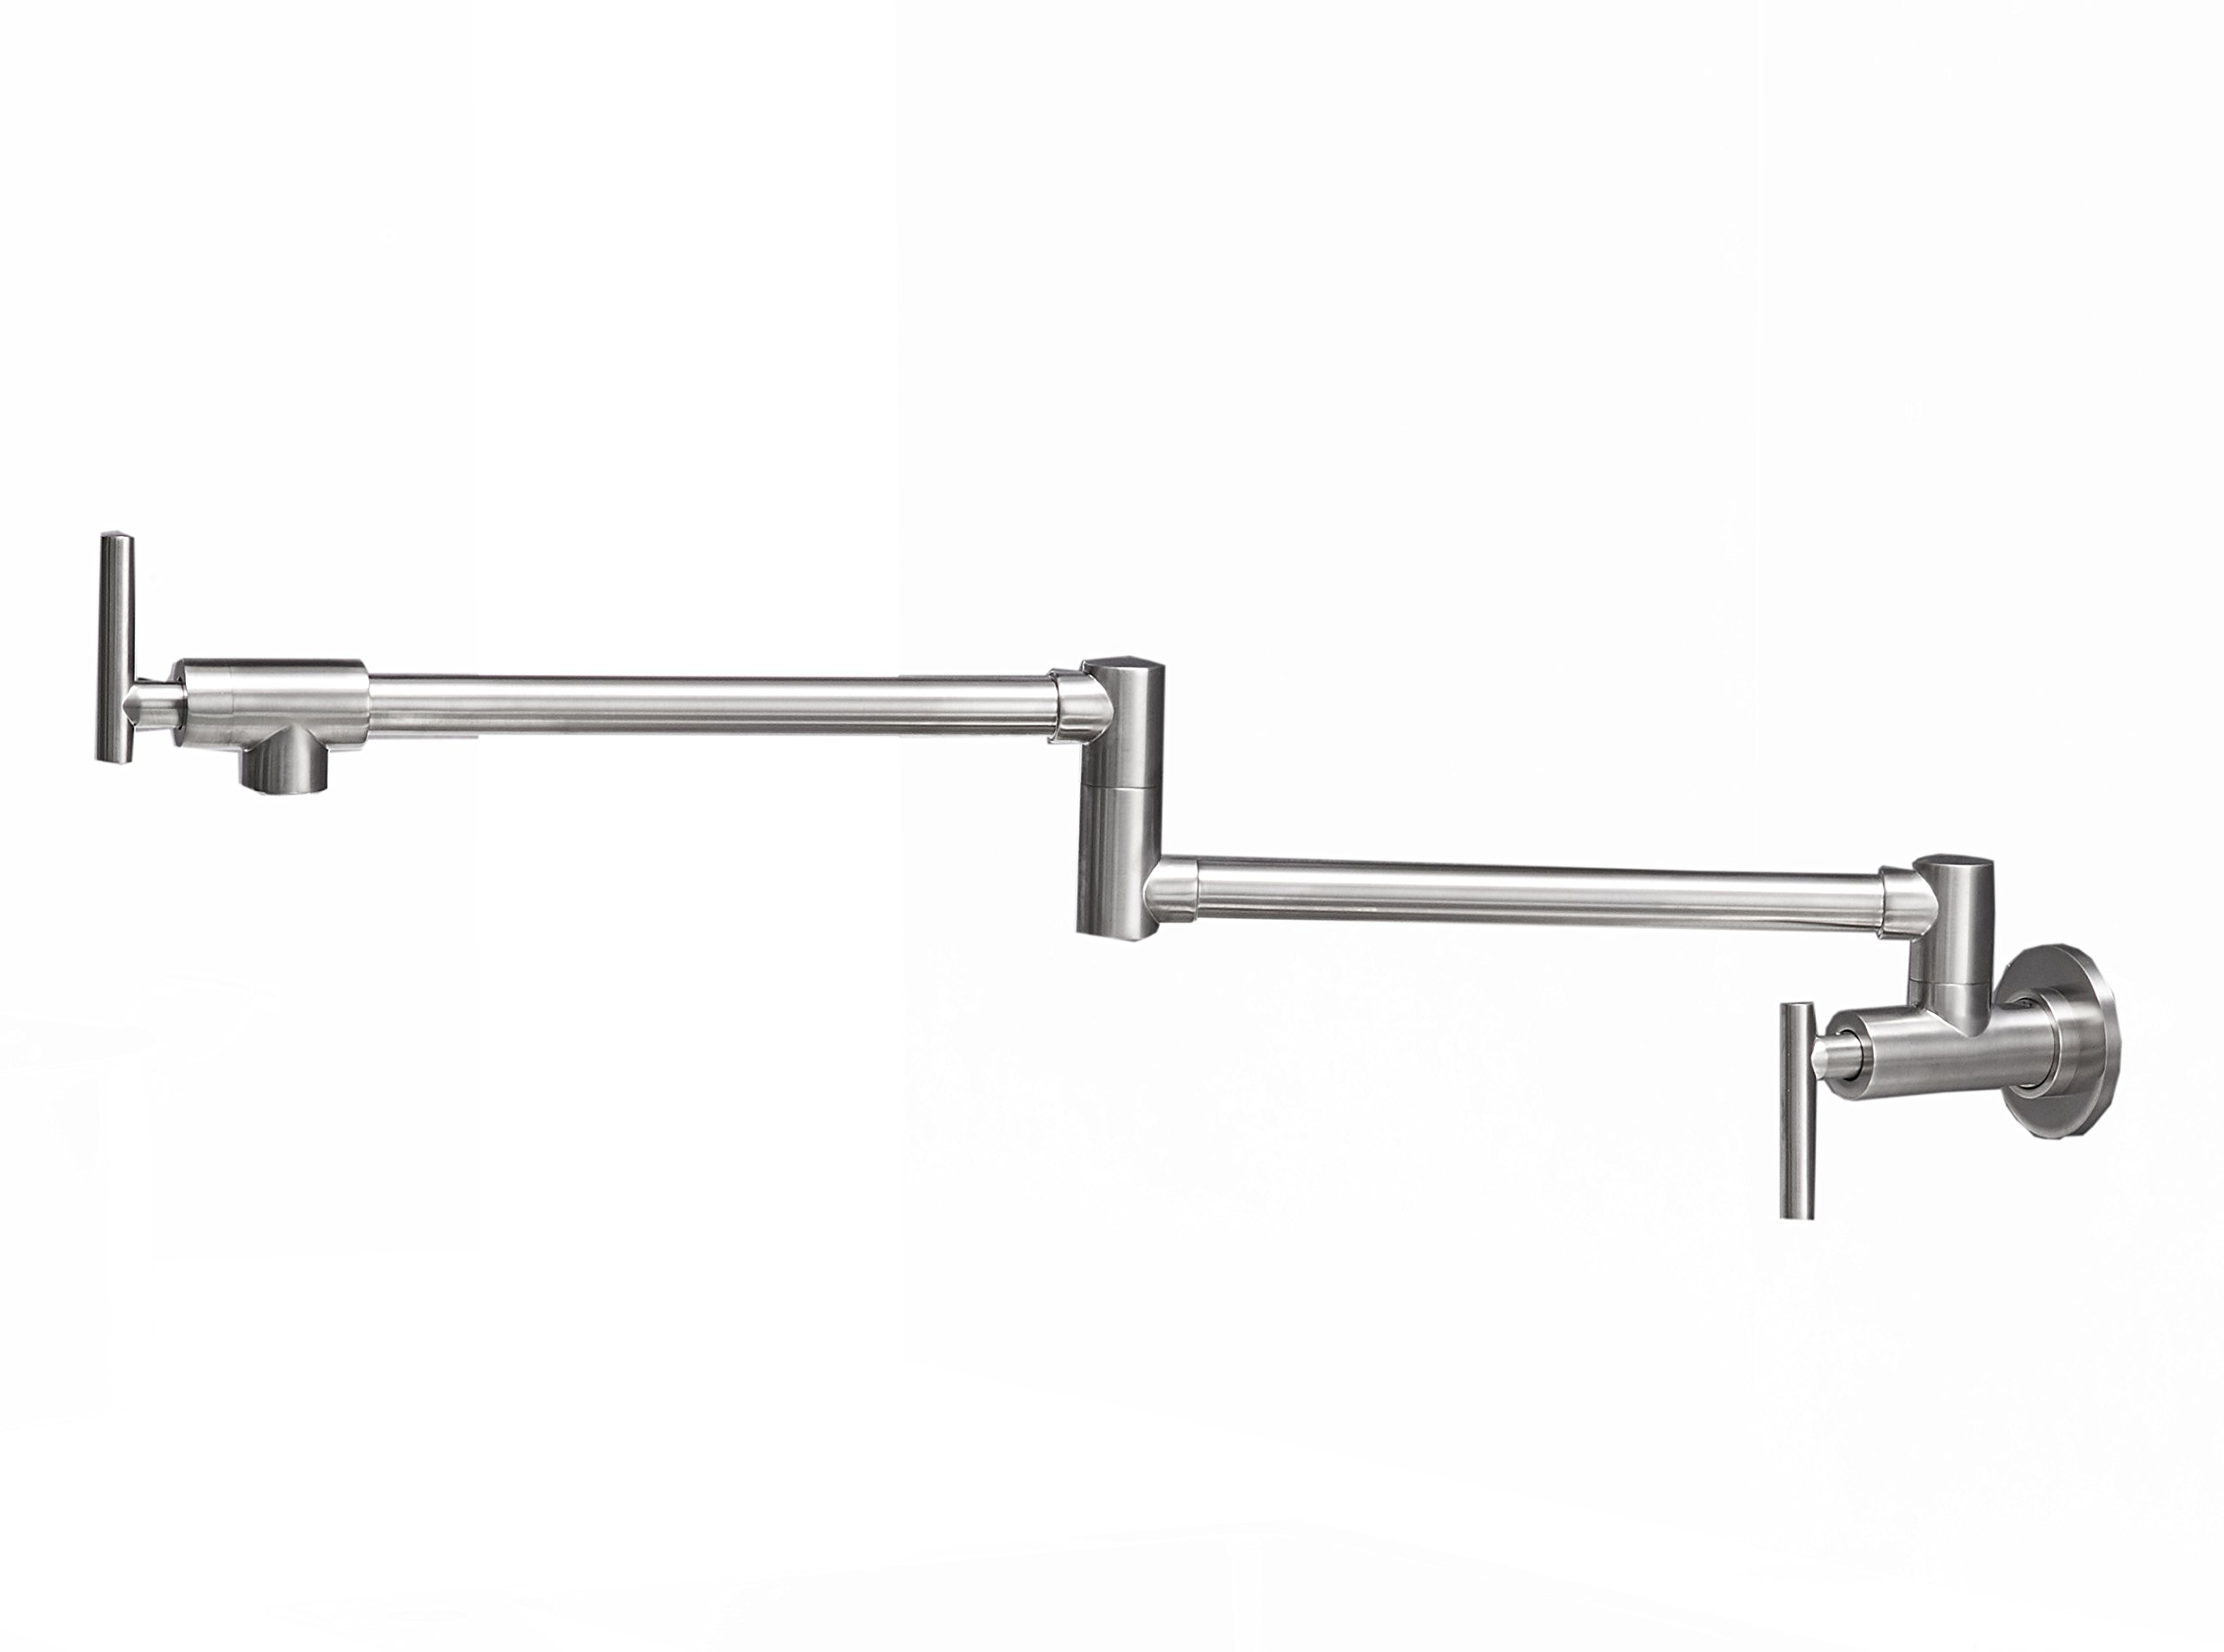 Aquafaucet Brushed Nickel Wall Mounted Pot Filler Kitchen Faucet With Double Joint Swing Arm